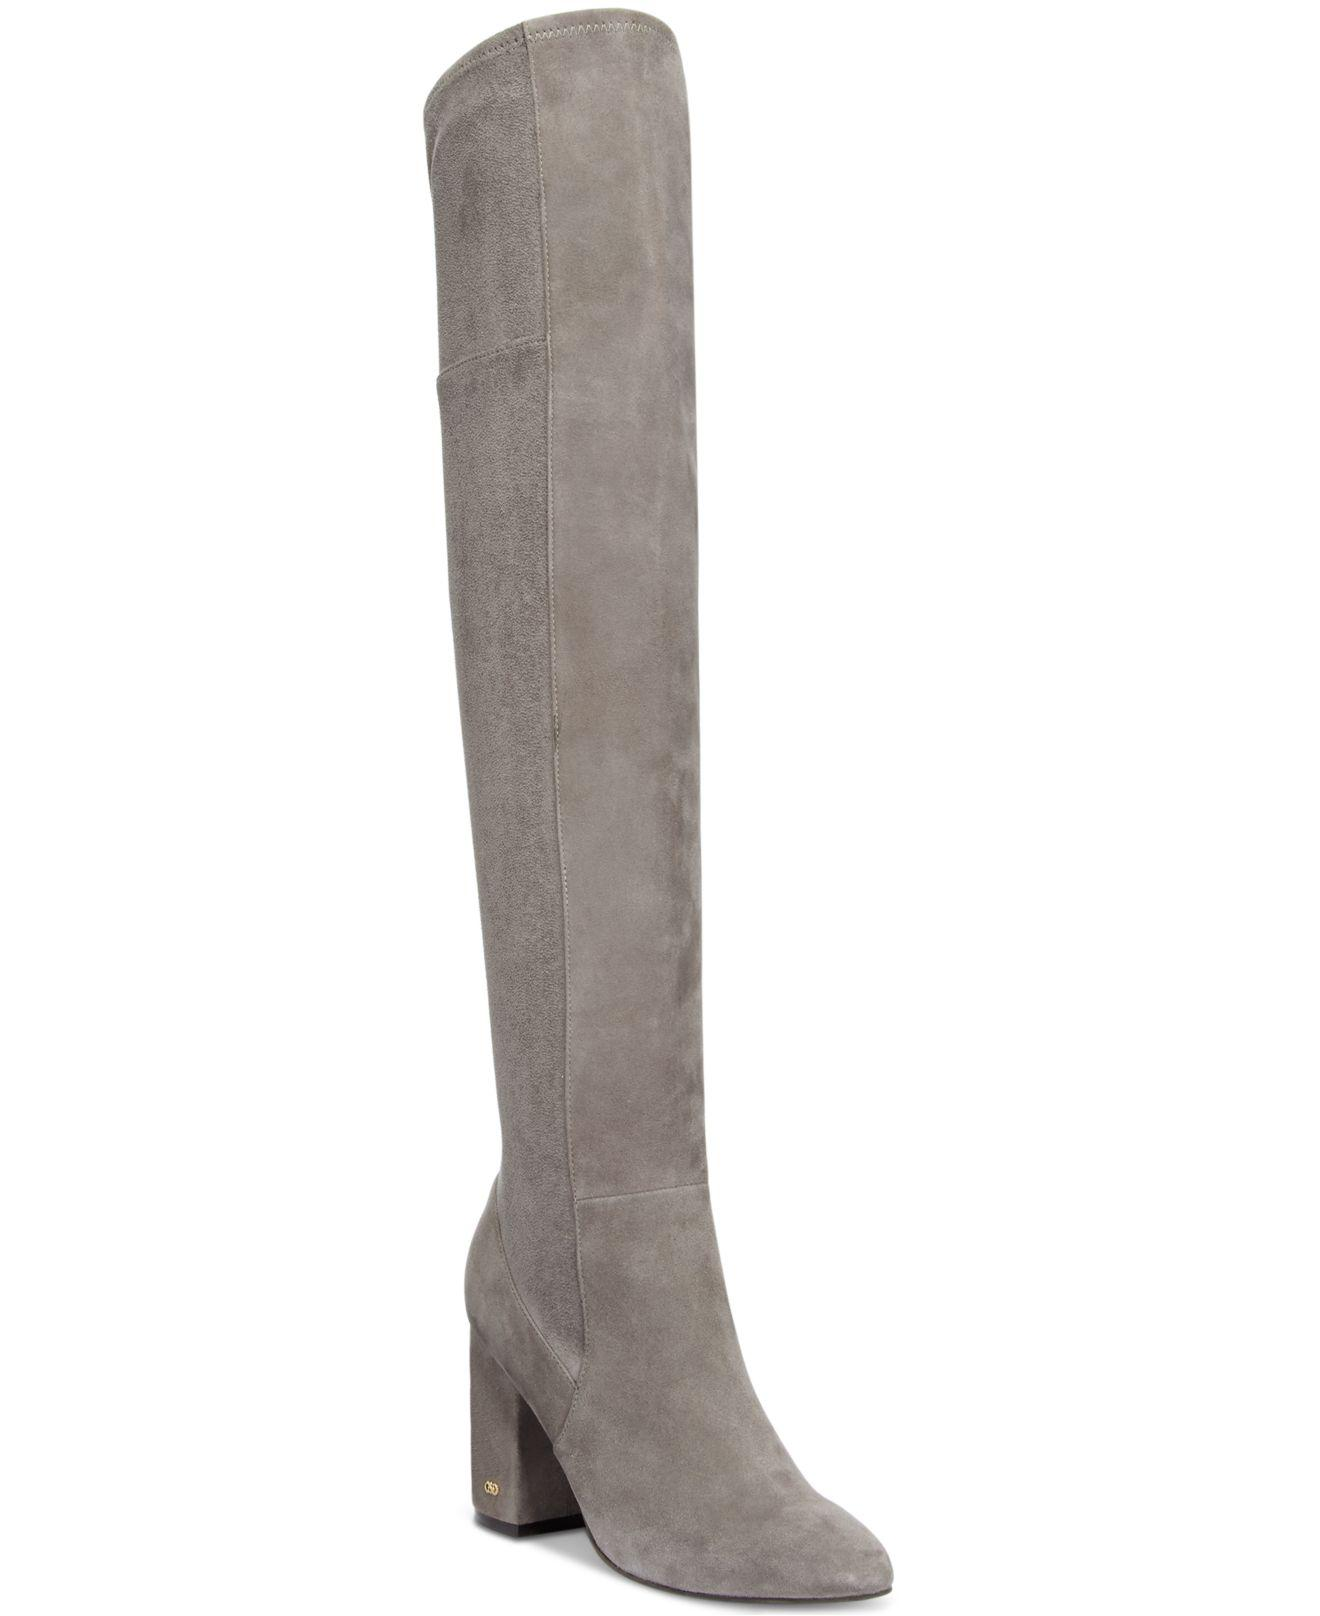 1f04c9b579d Lyst - Cole Haan Darla Over-the-knee Boots in Gray